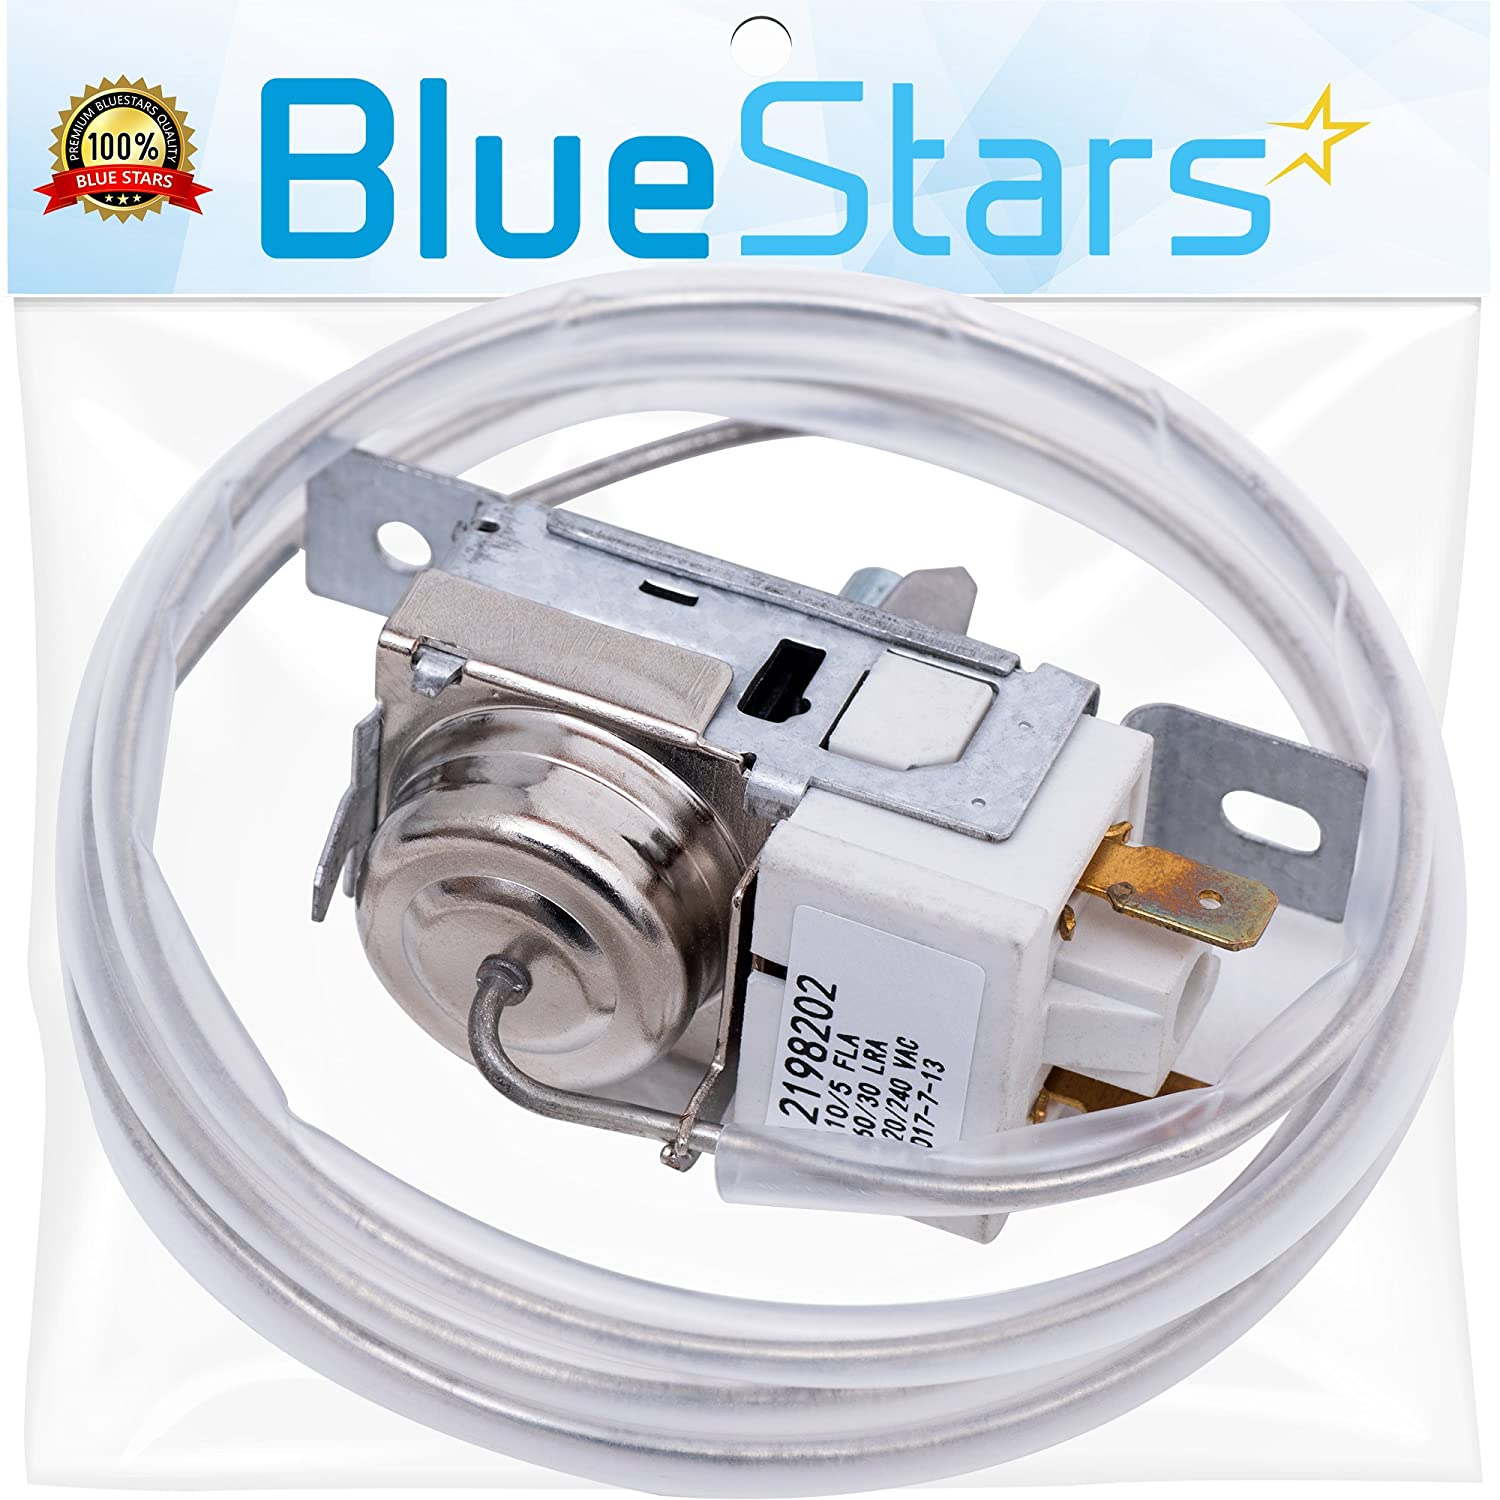 Details about Ultra Durable 2198202 Refrigerator Cold Control Thermostat  Replacement by